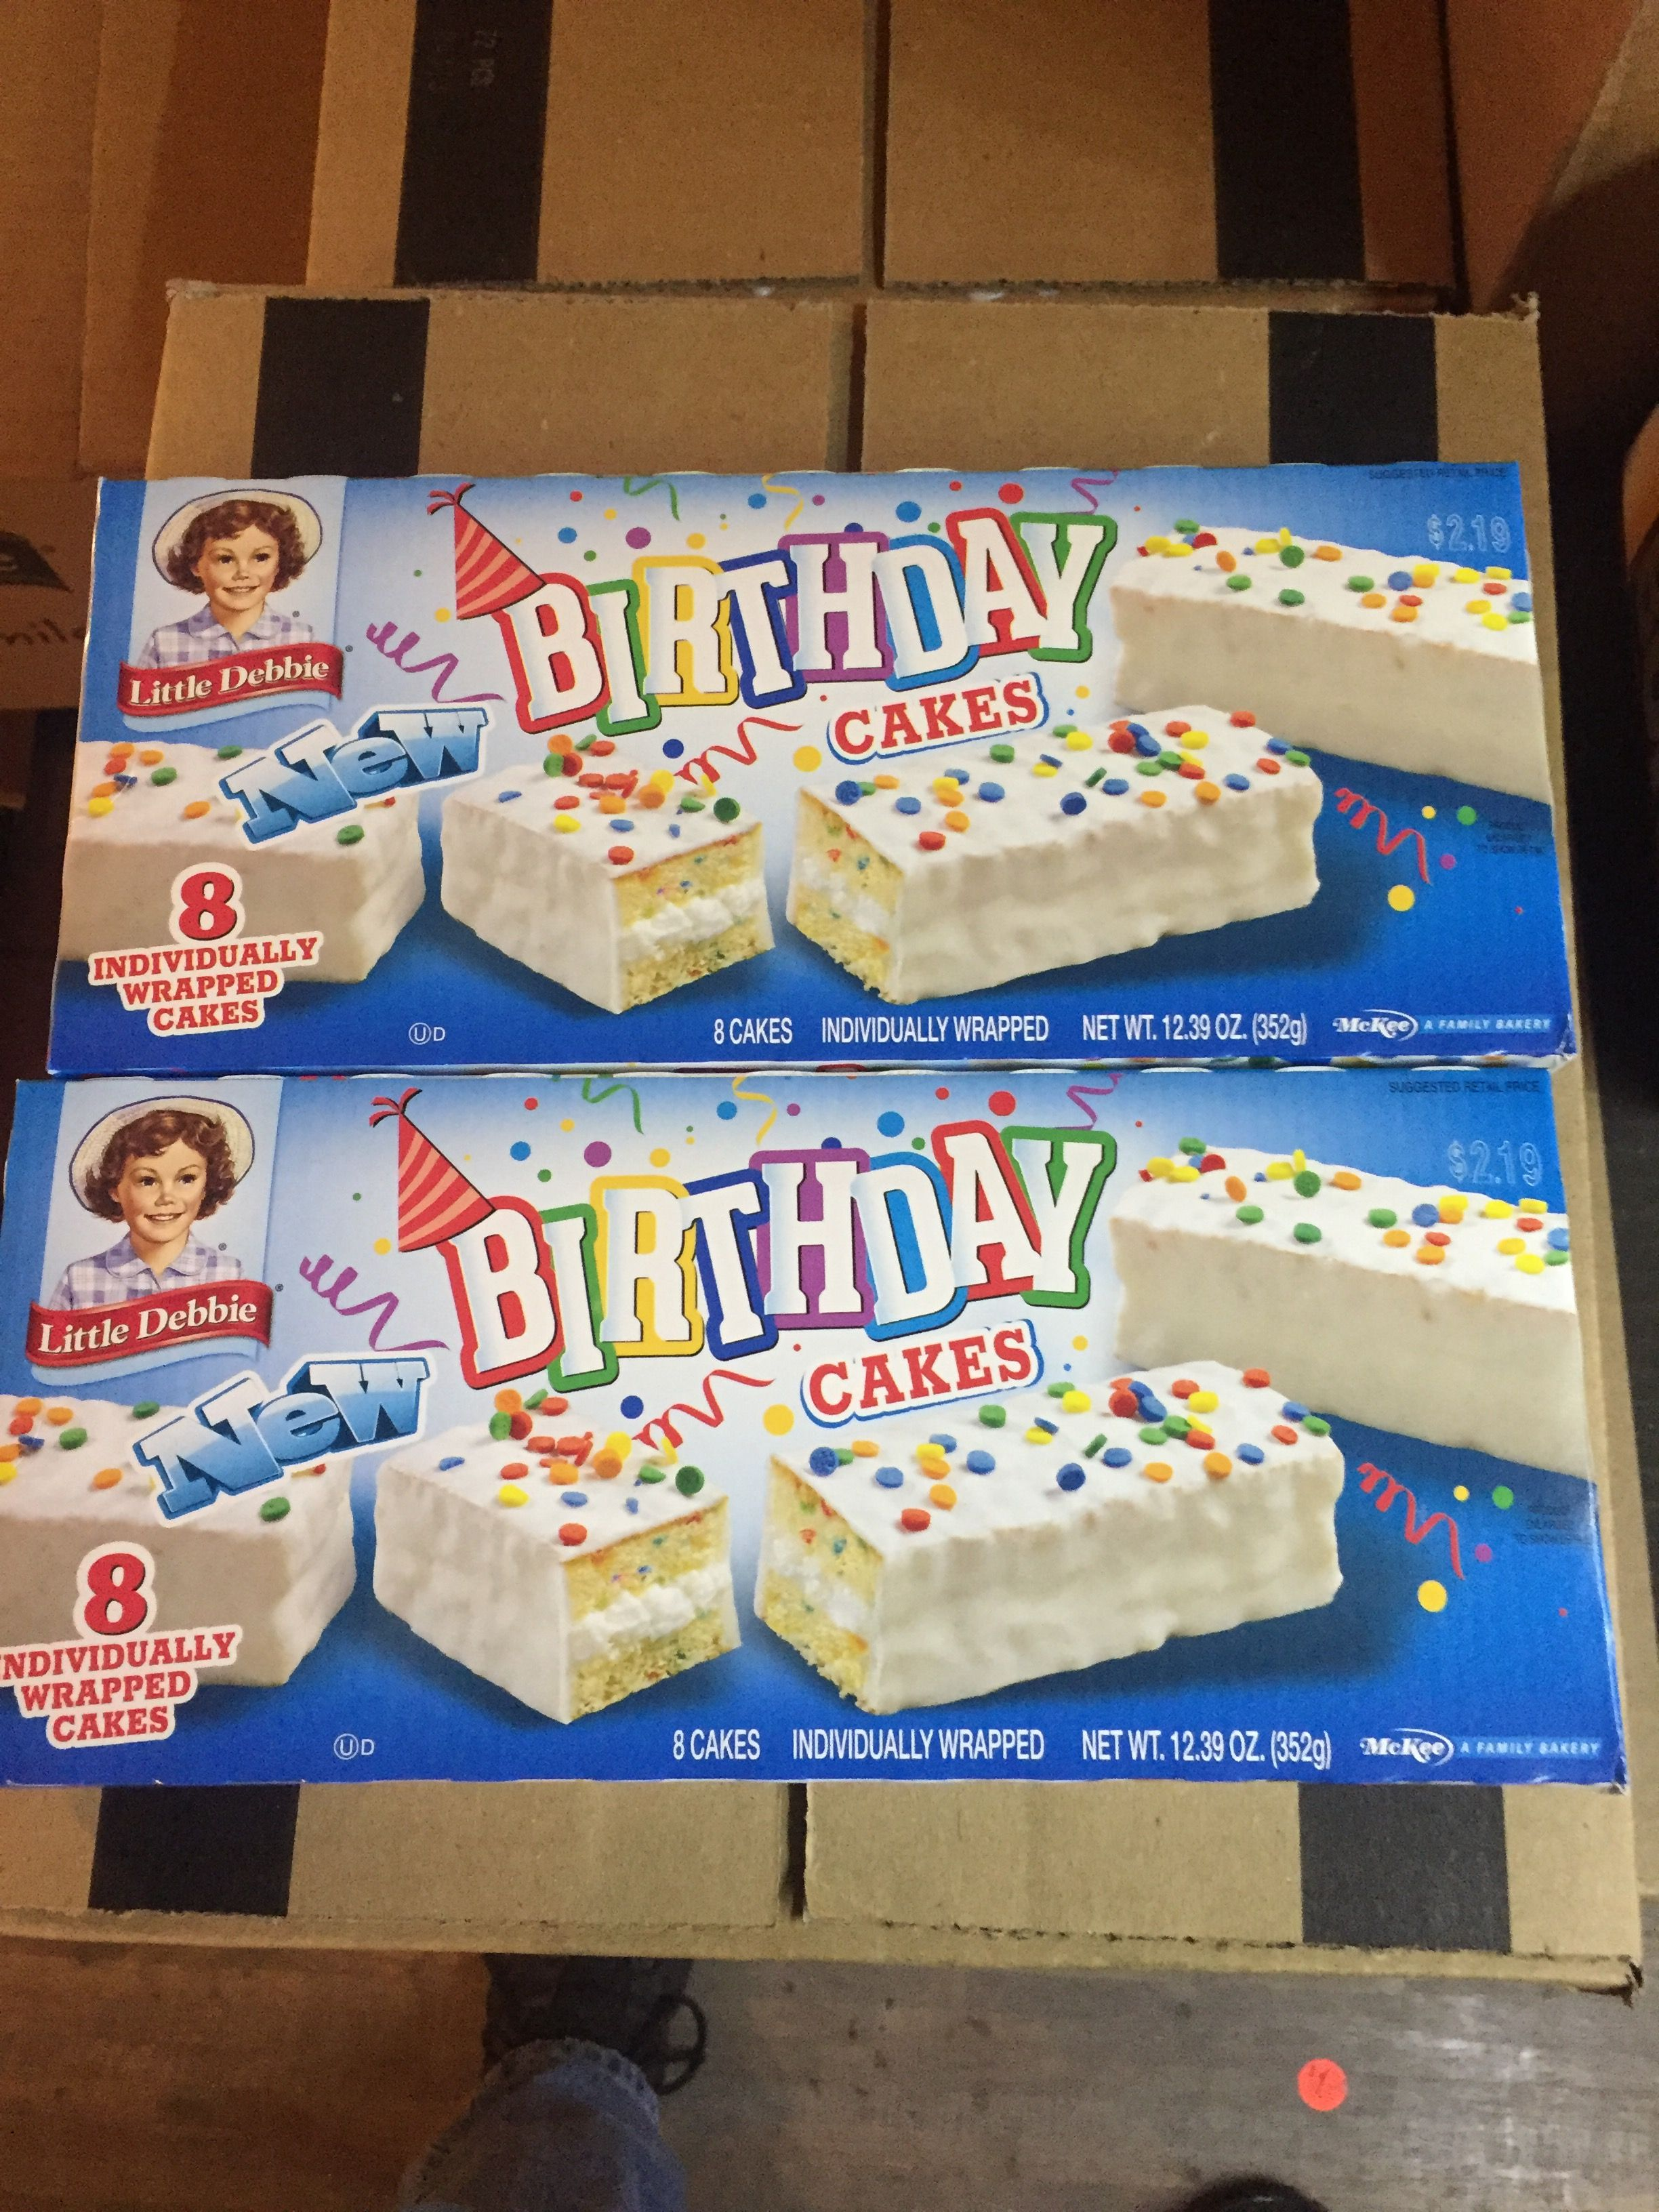 Astonishing Little Debbie Birthday Cakes With Images Weird Food Debbie Snacks Funny Birthday Cards Online Eattedamsfinfo